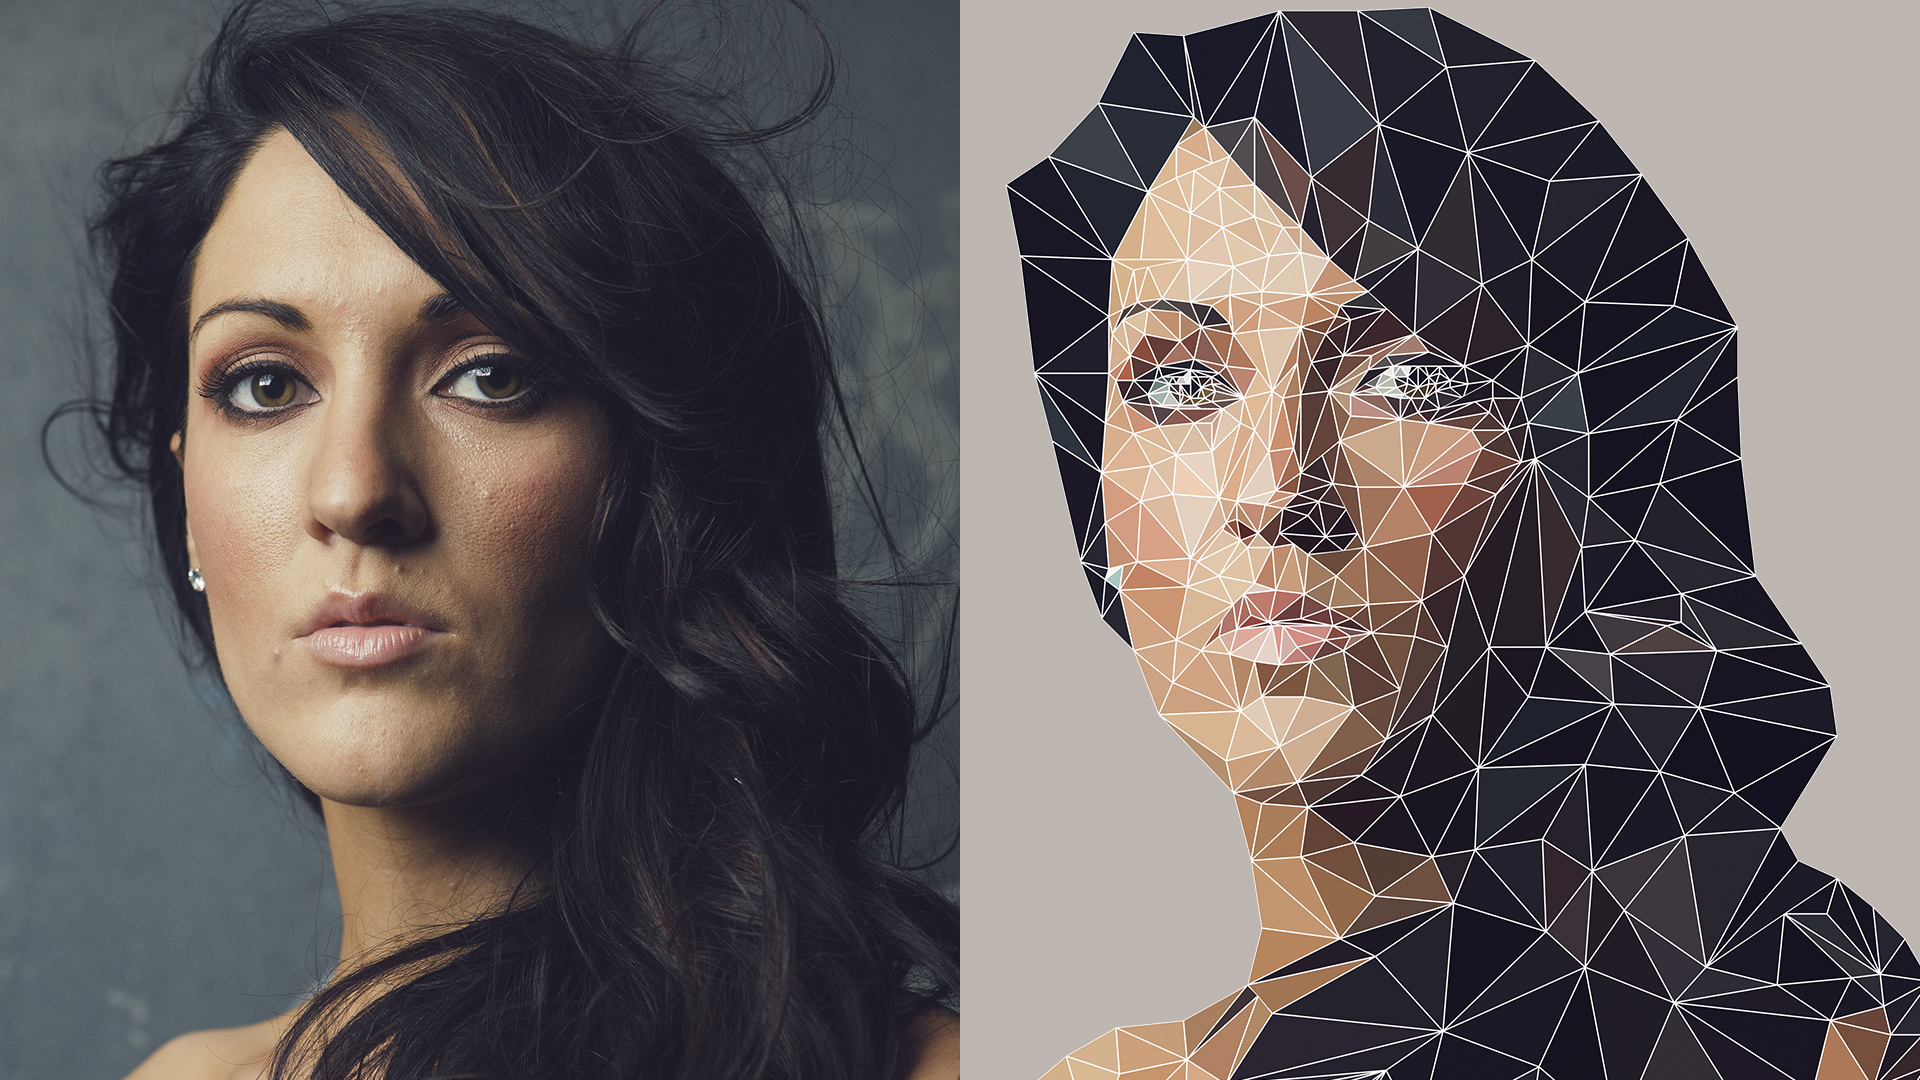 Low Poly Geometric Effect in Photoshop ONLY